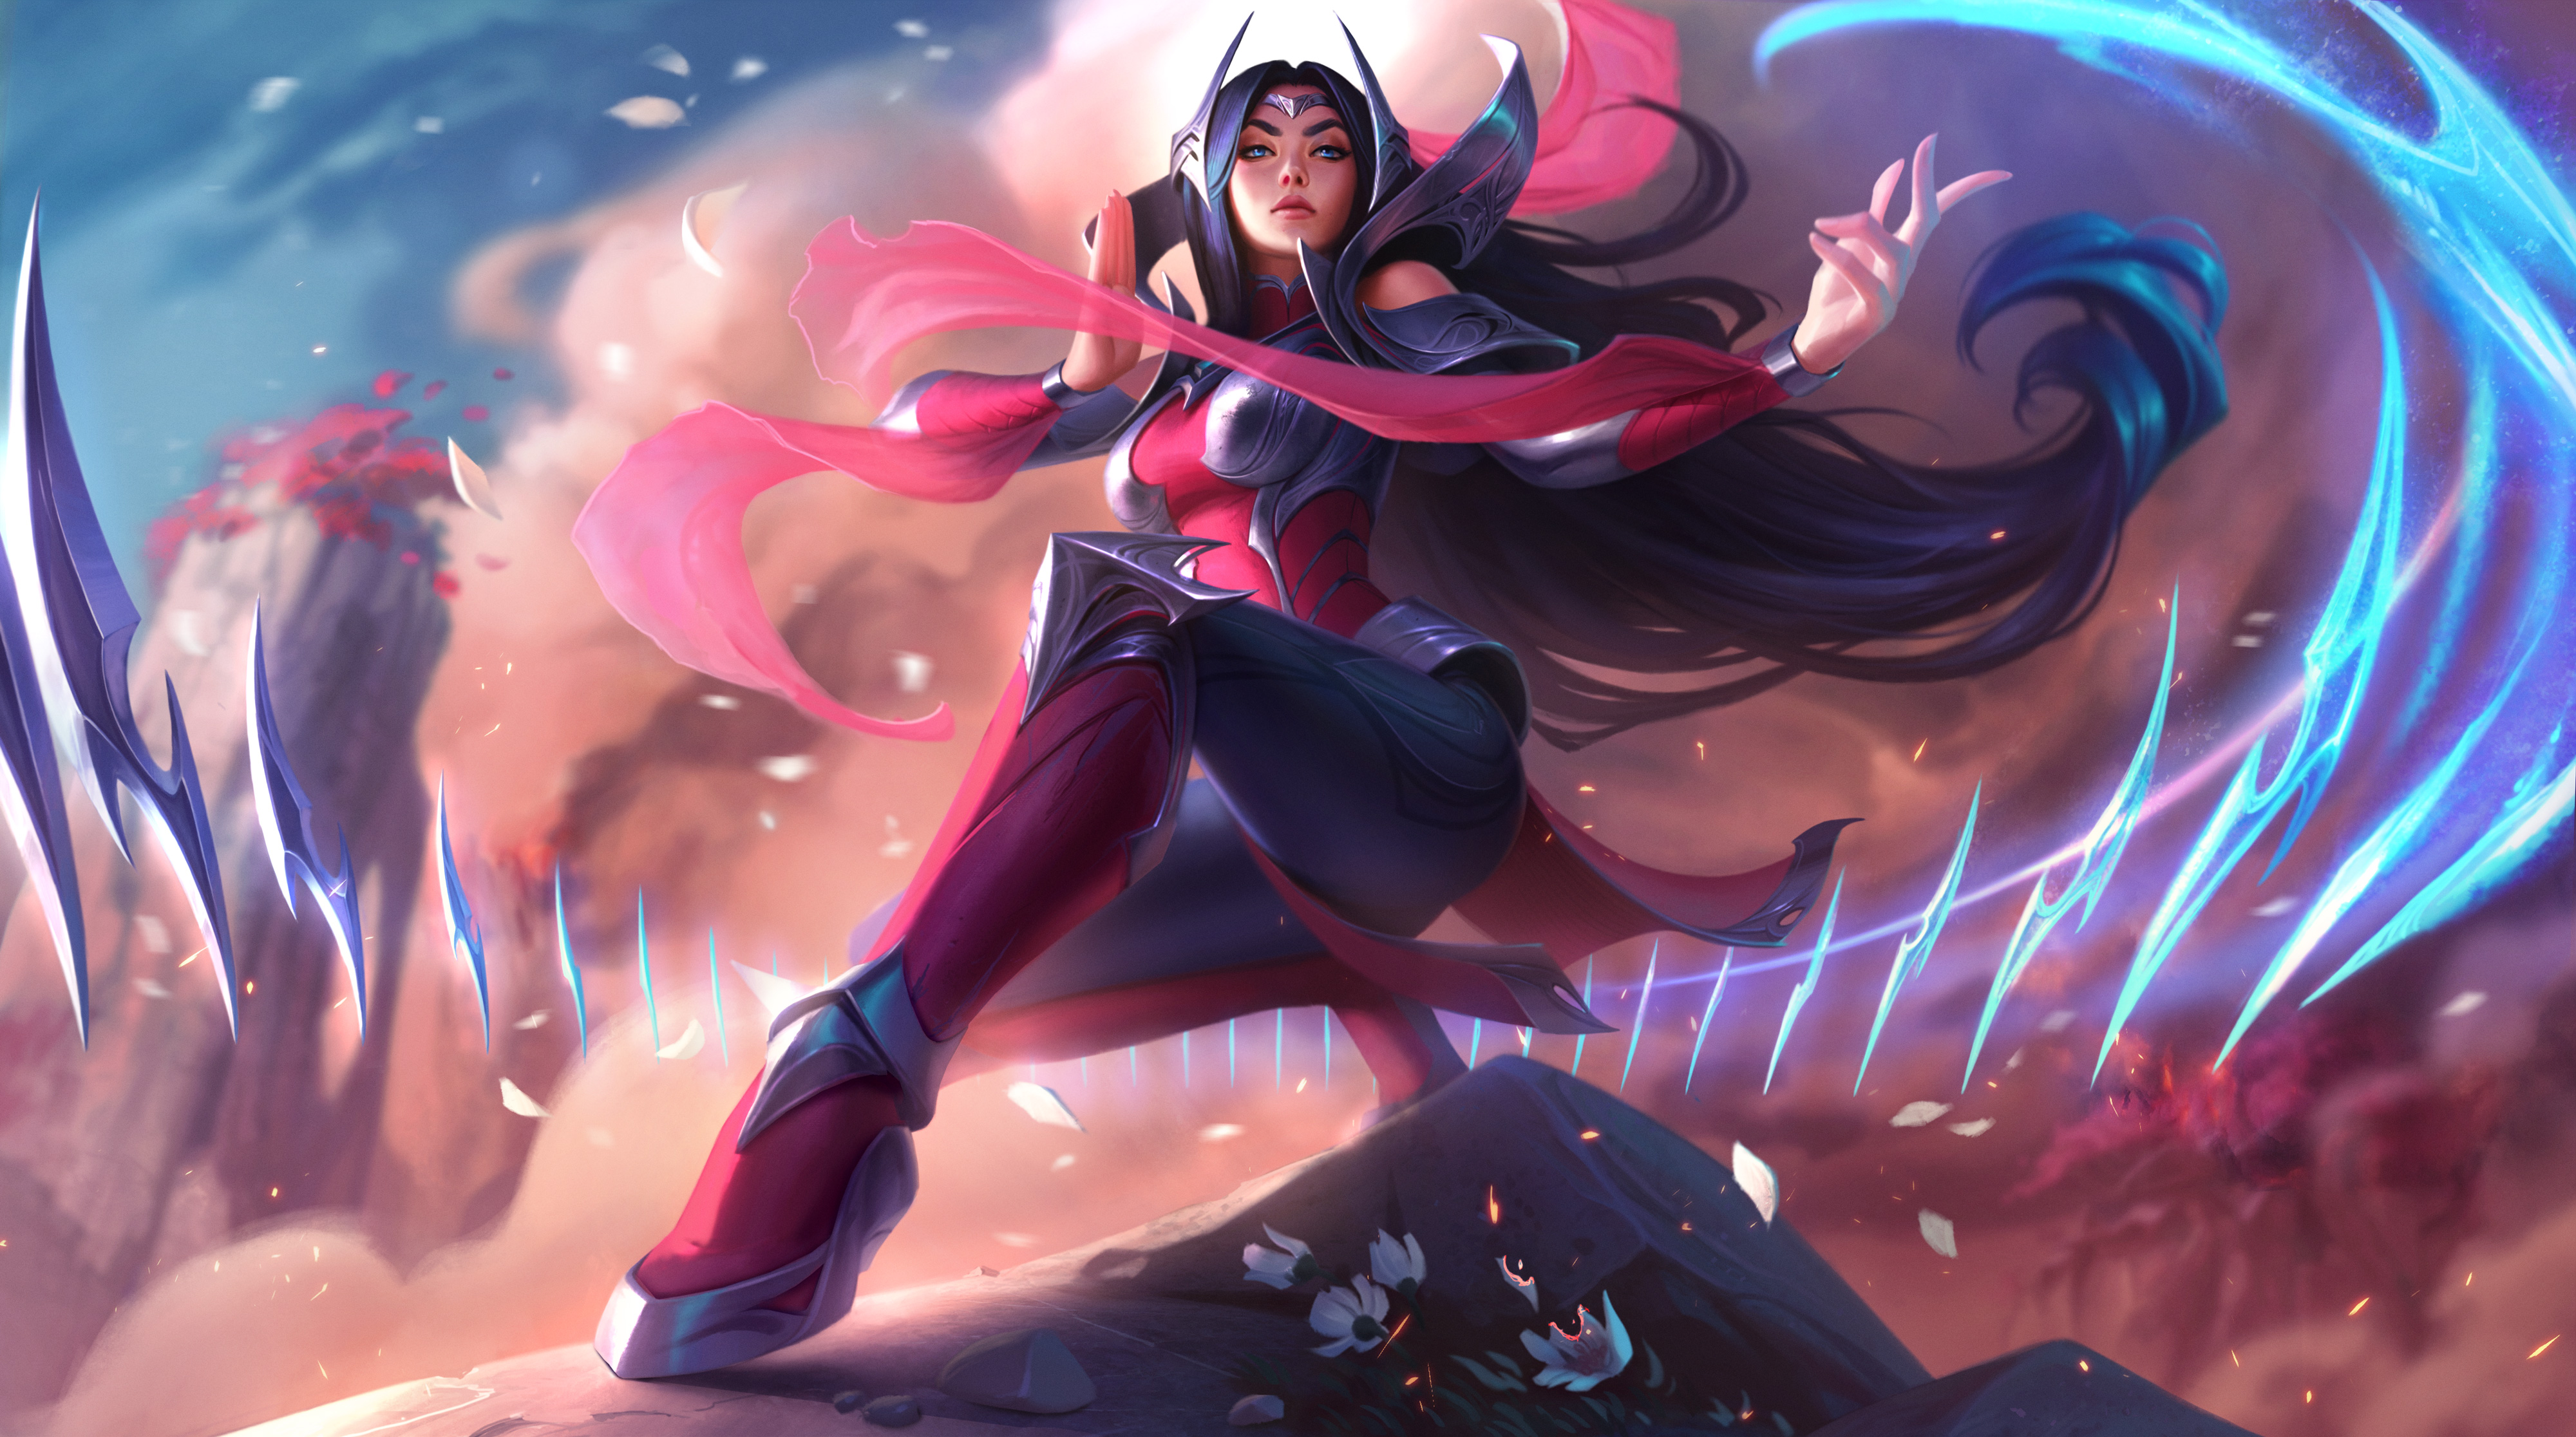 Irelia League Of Legends Hd Games 4k Wallpapers Images